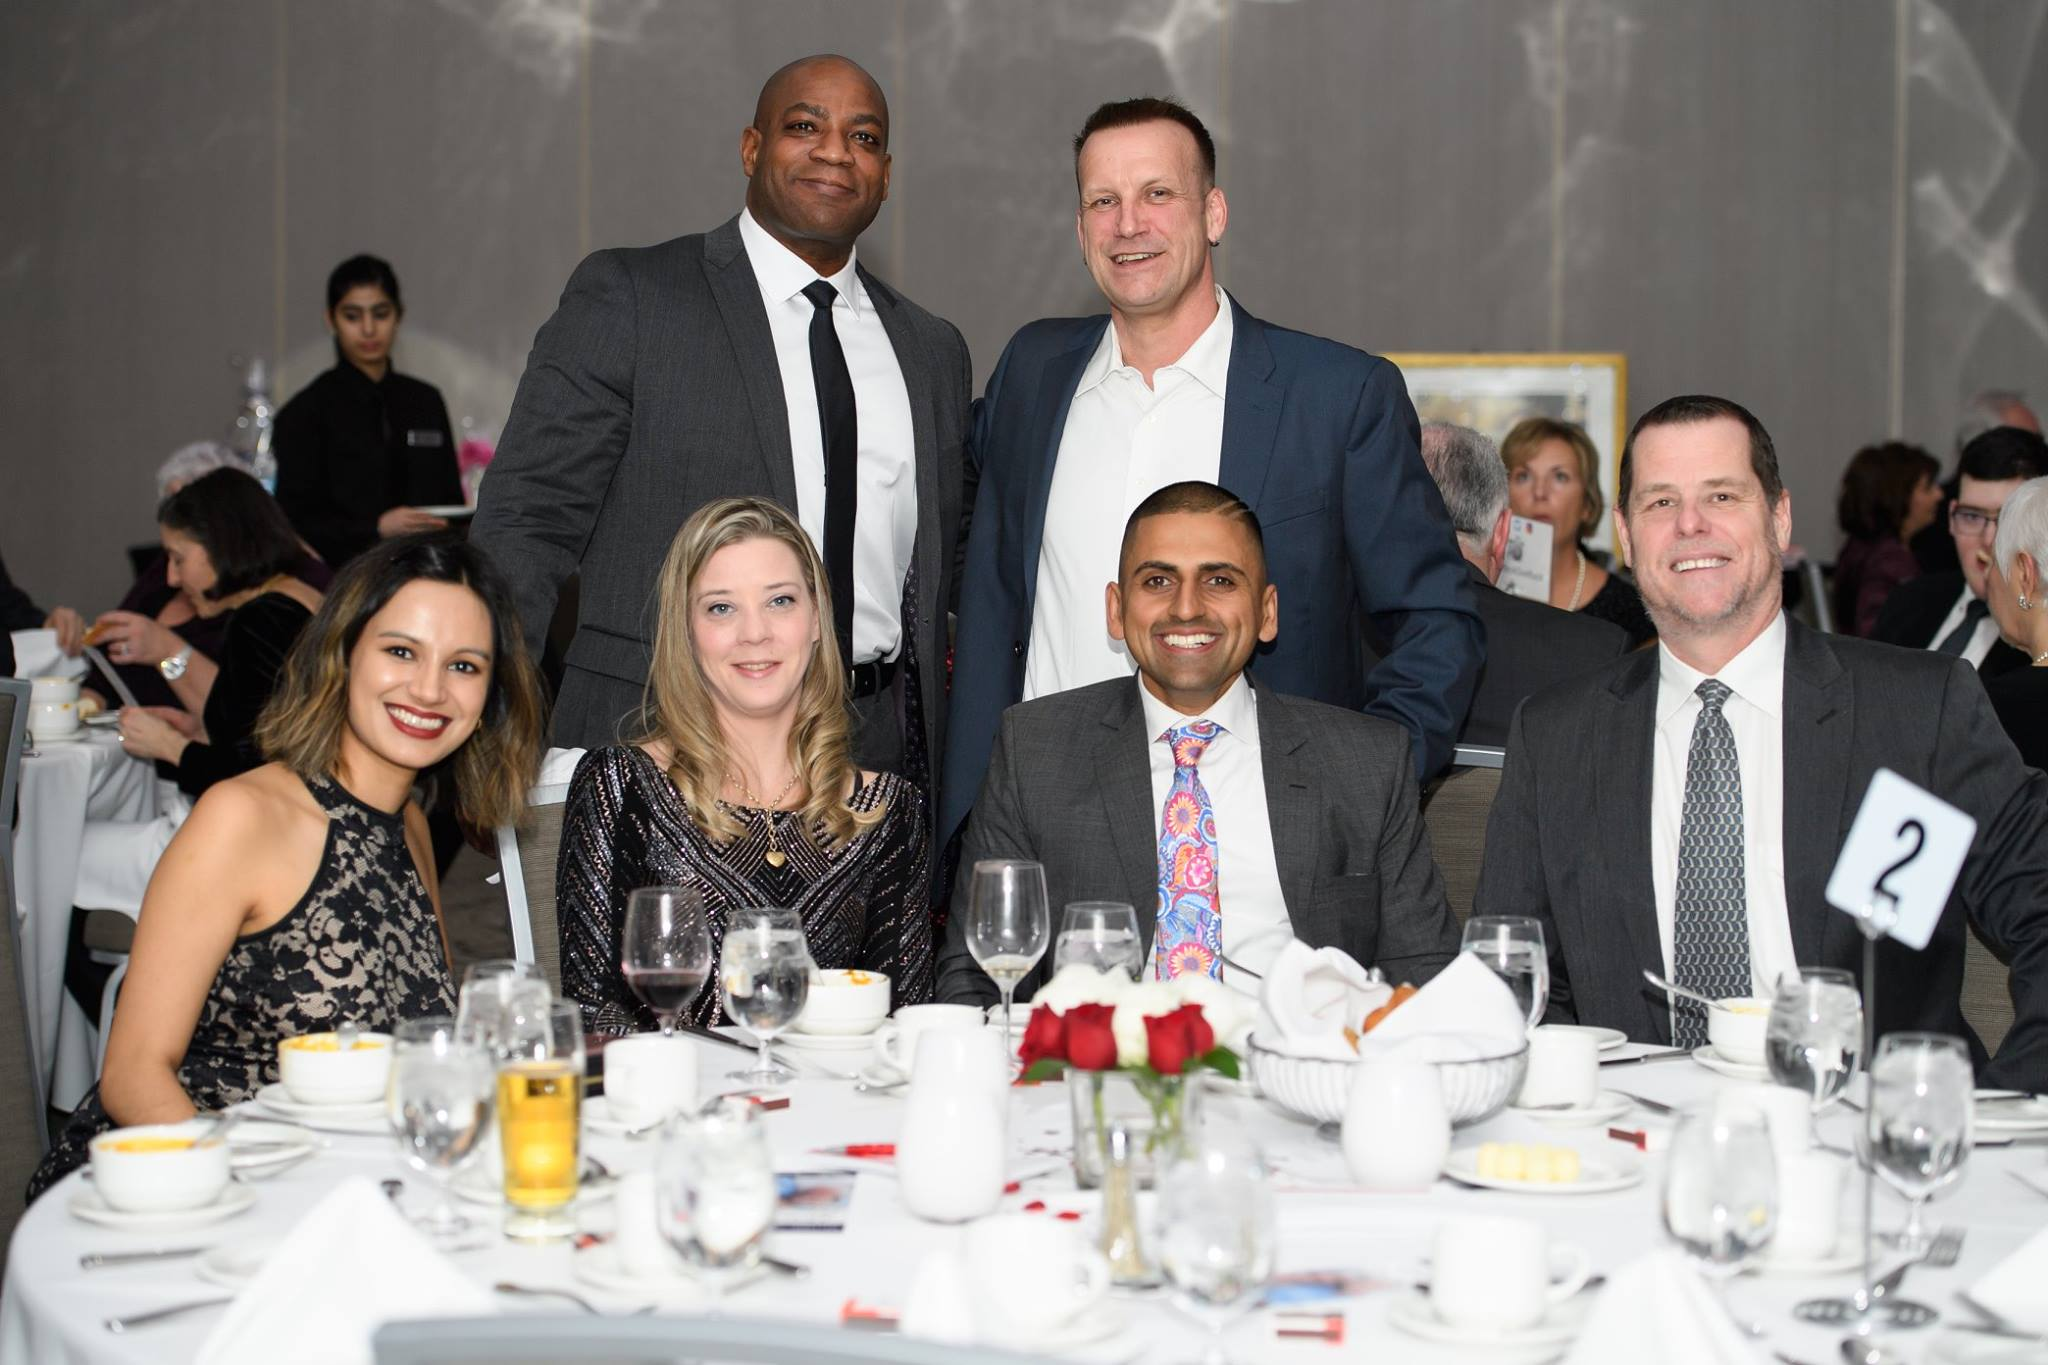 Survivor's Gala 2019   On Saturday, February 9th, 2019 we enjoyed a beautiful 3-course meal, silent auction and amazing entertainment in support of cancer survivors. We would like to thank everyone who attended and a special thank you to our supporting sponsors.